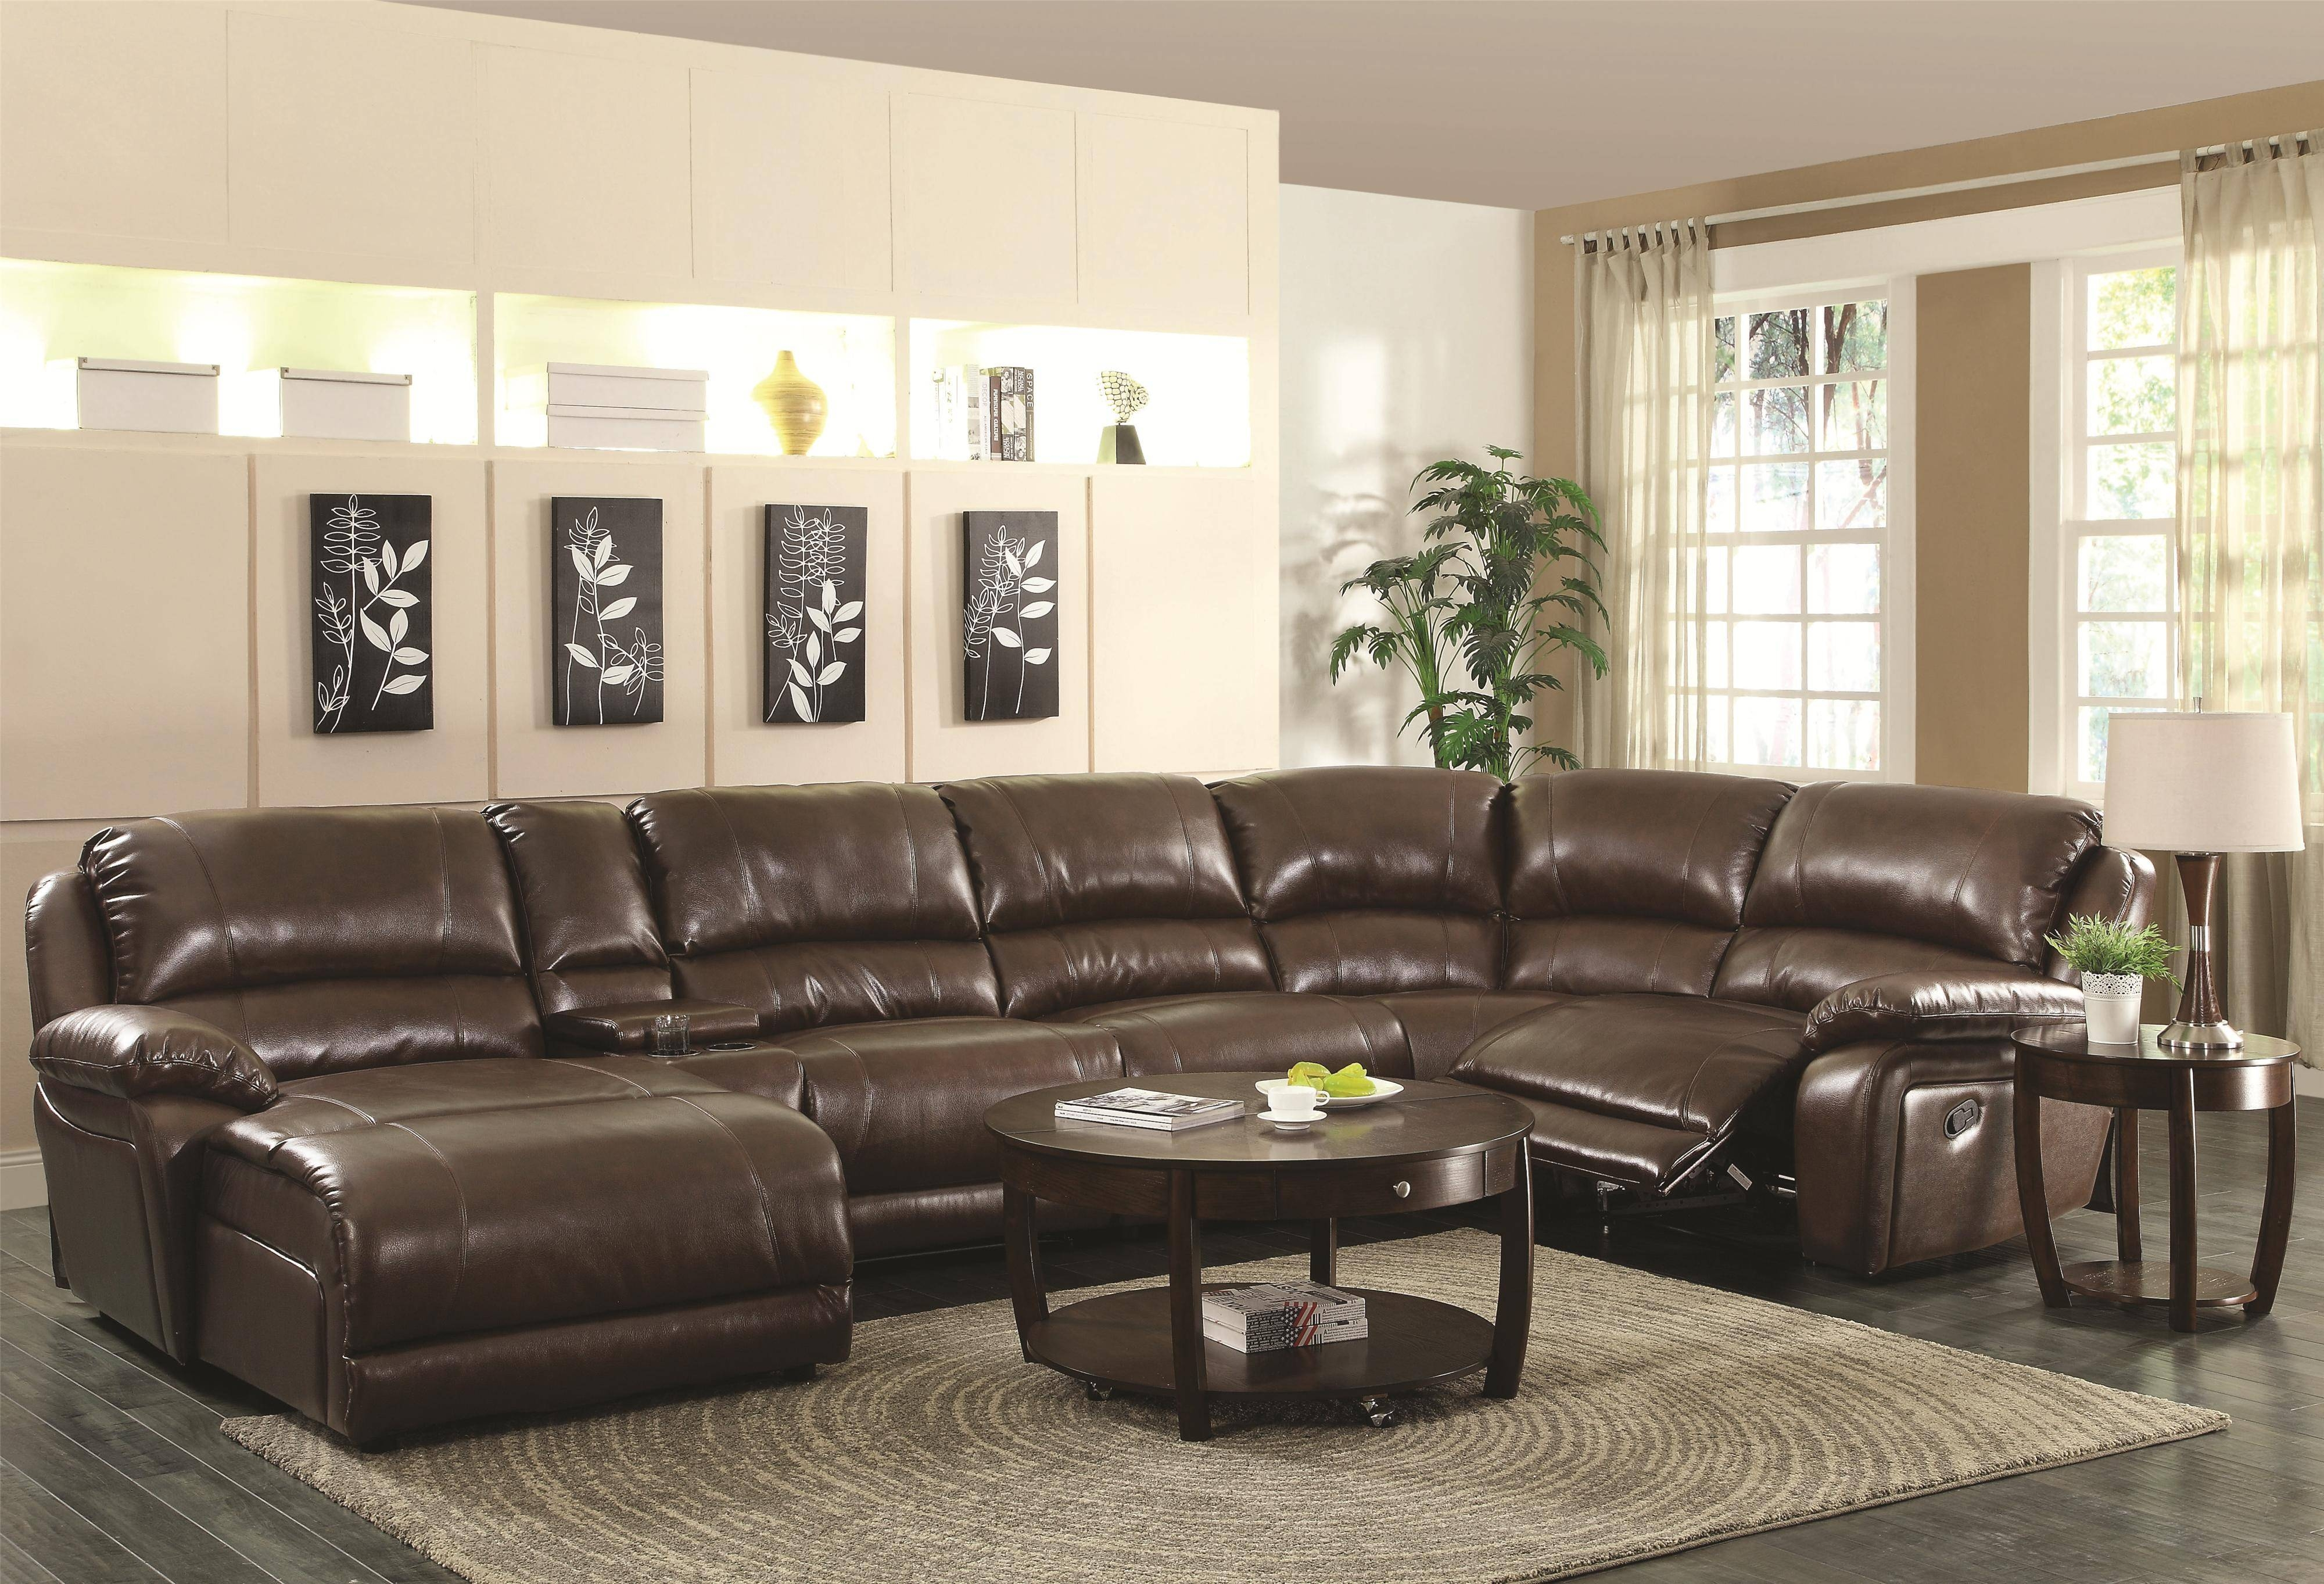 Coaster Mackenzie Chestnut 6-Piece Reclining Sectional Sofa With with regard to 6 Piece Sectional Sofas Couches (Image 5 of 15)